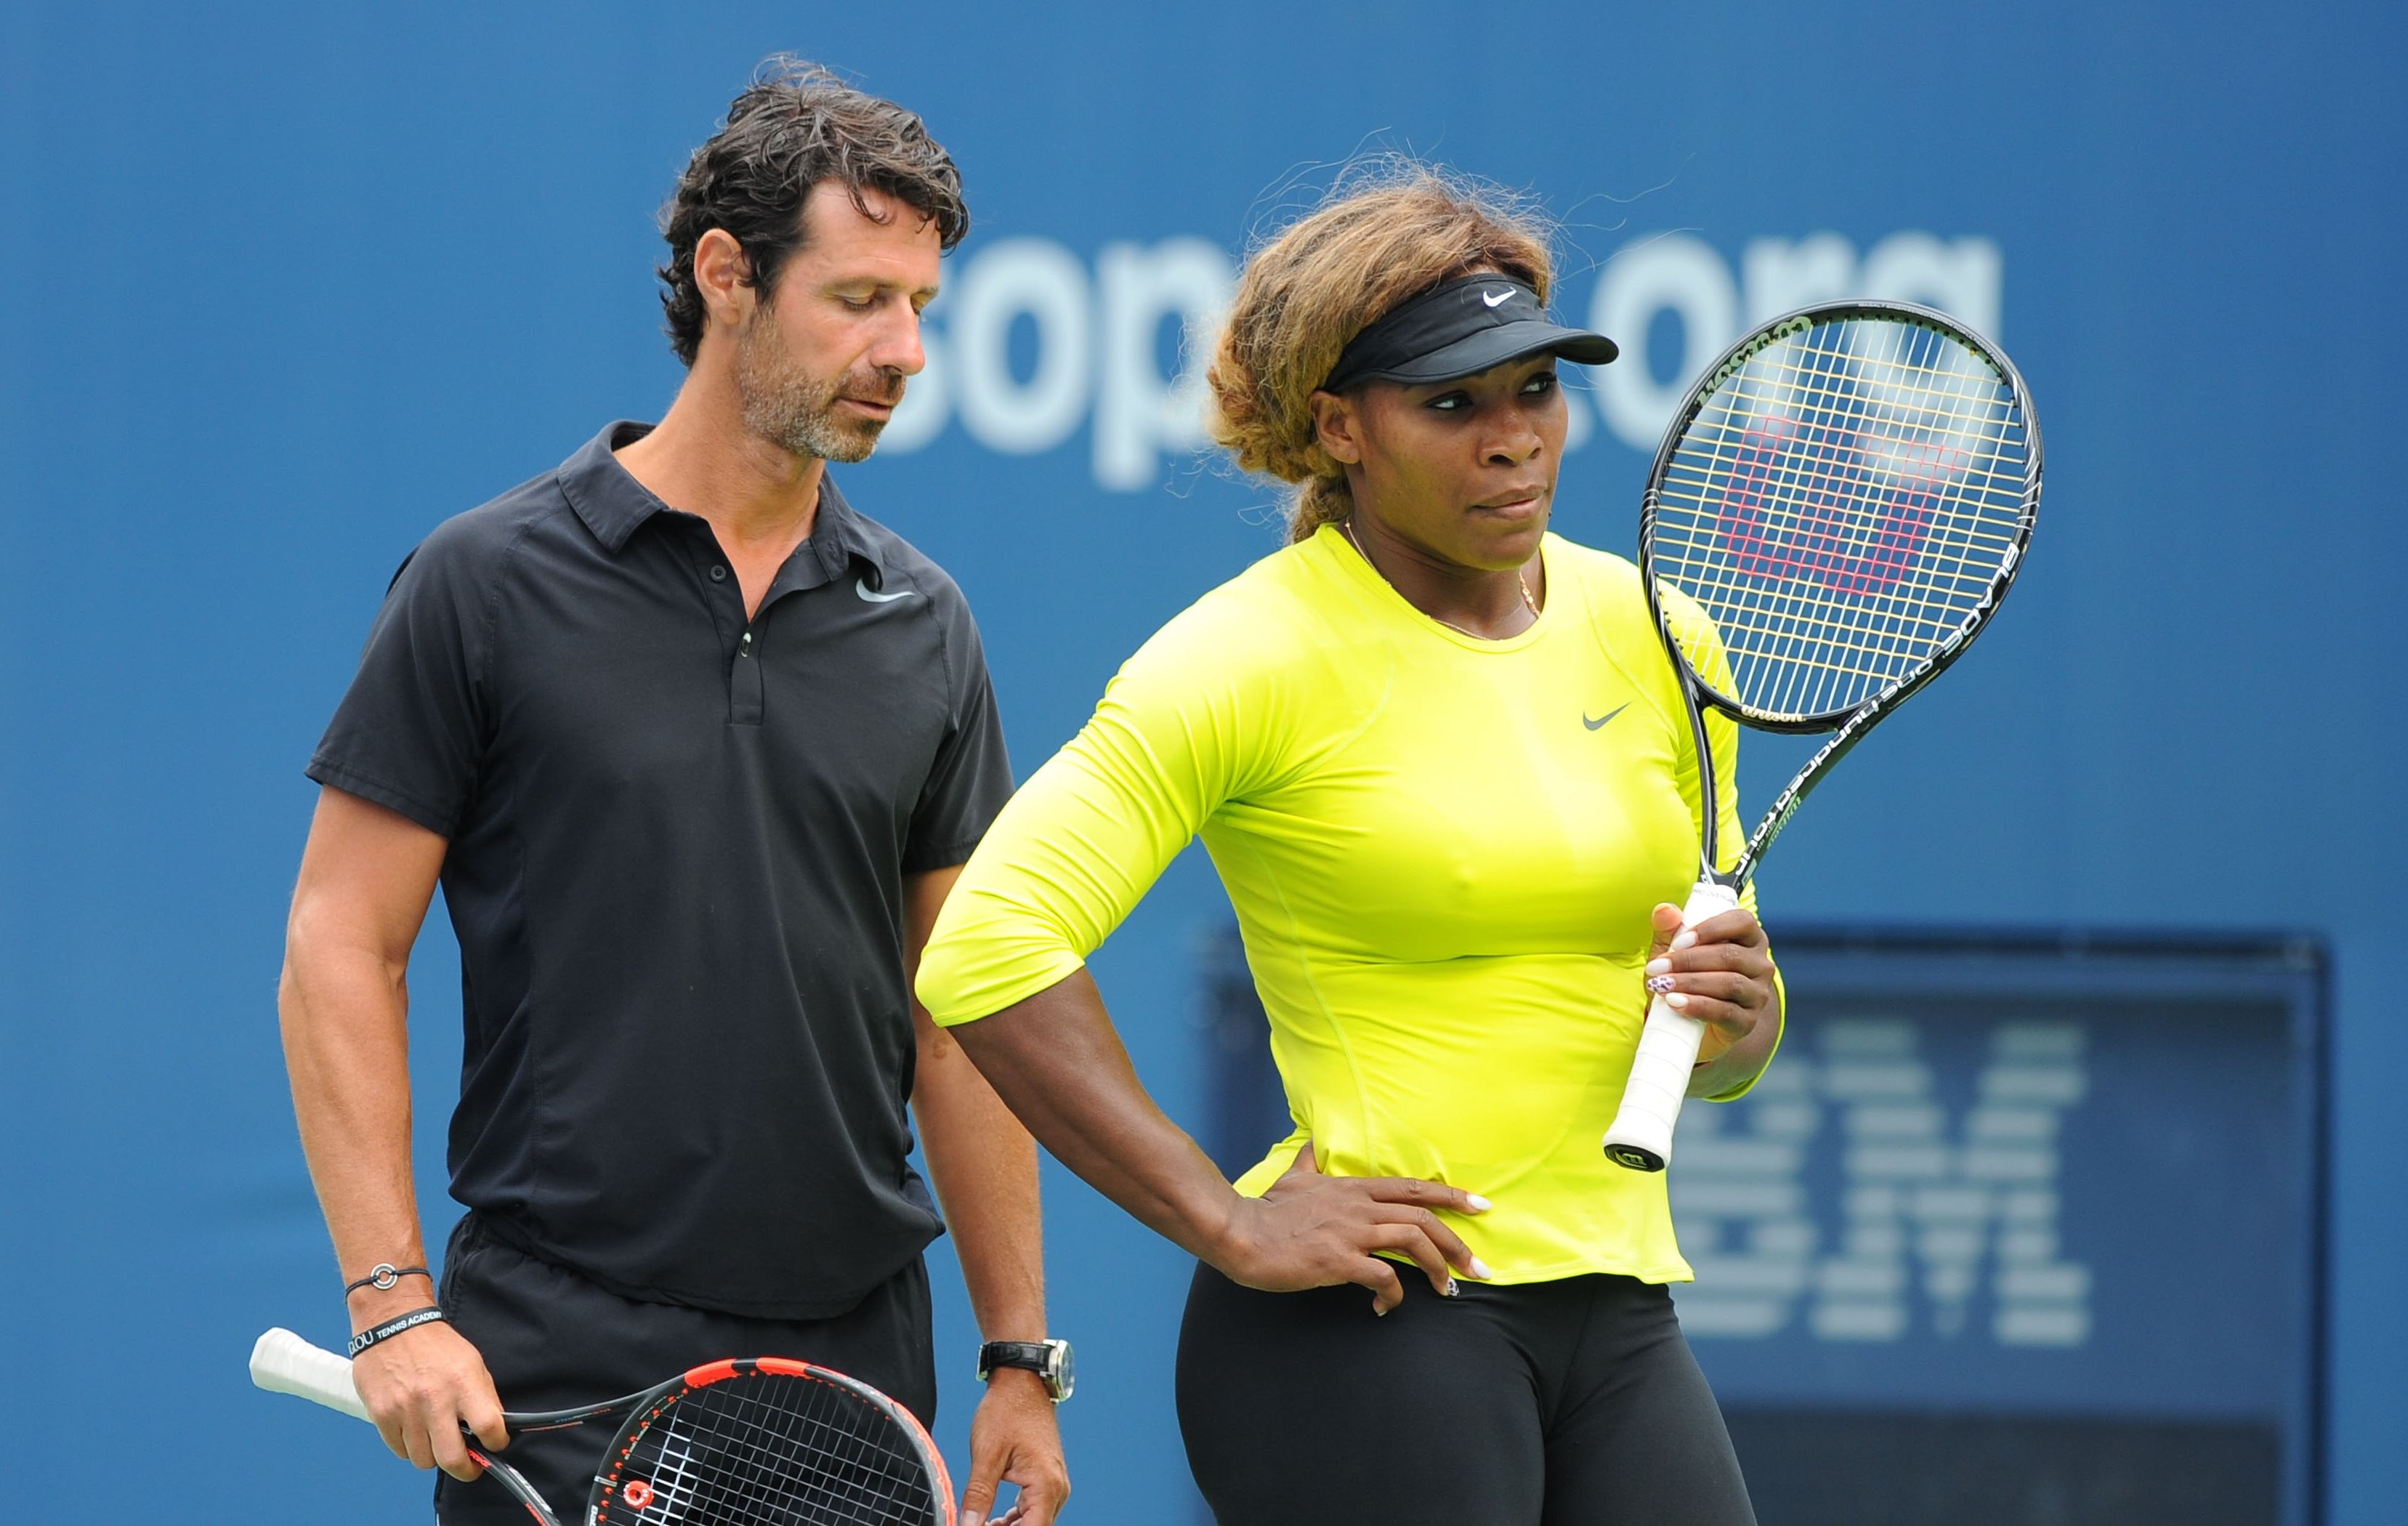 Tennis : US Open - Serena Williams abat sa derni�re carte